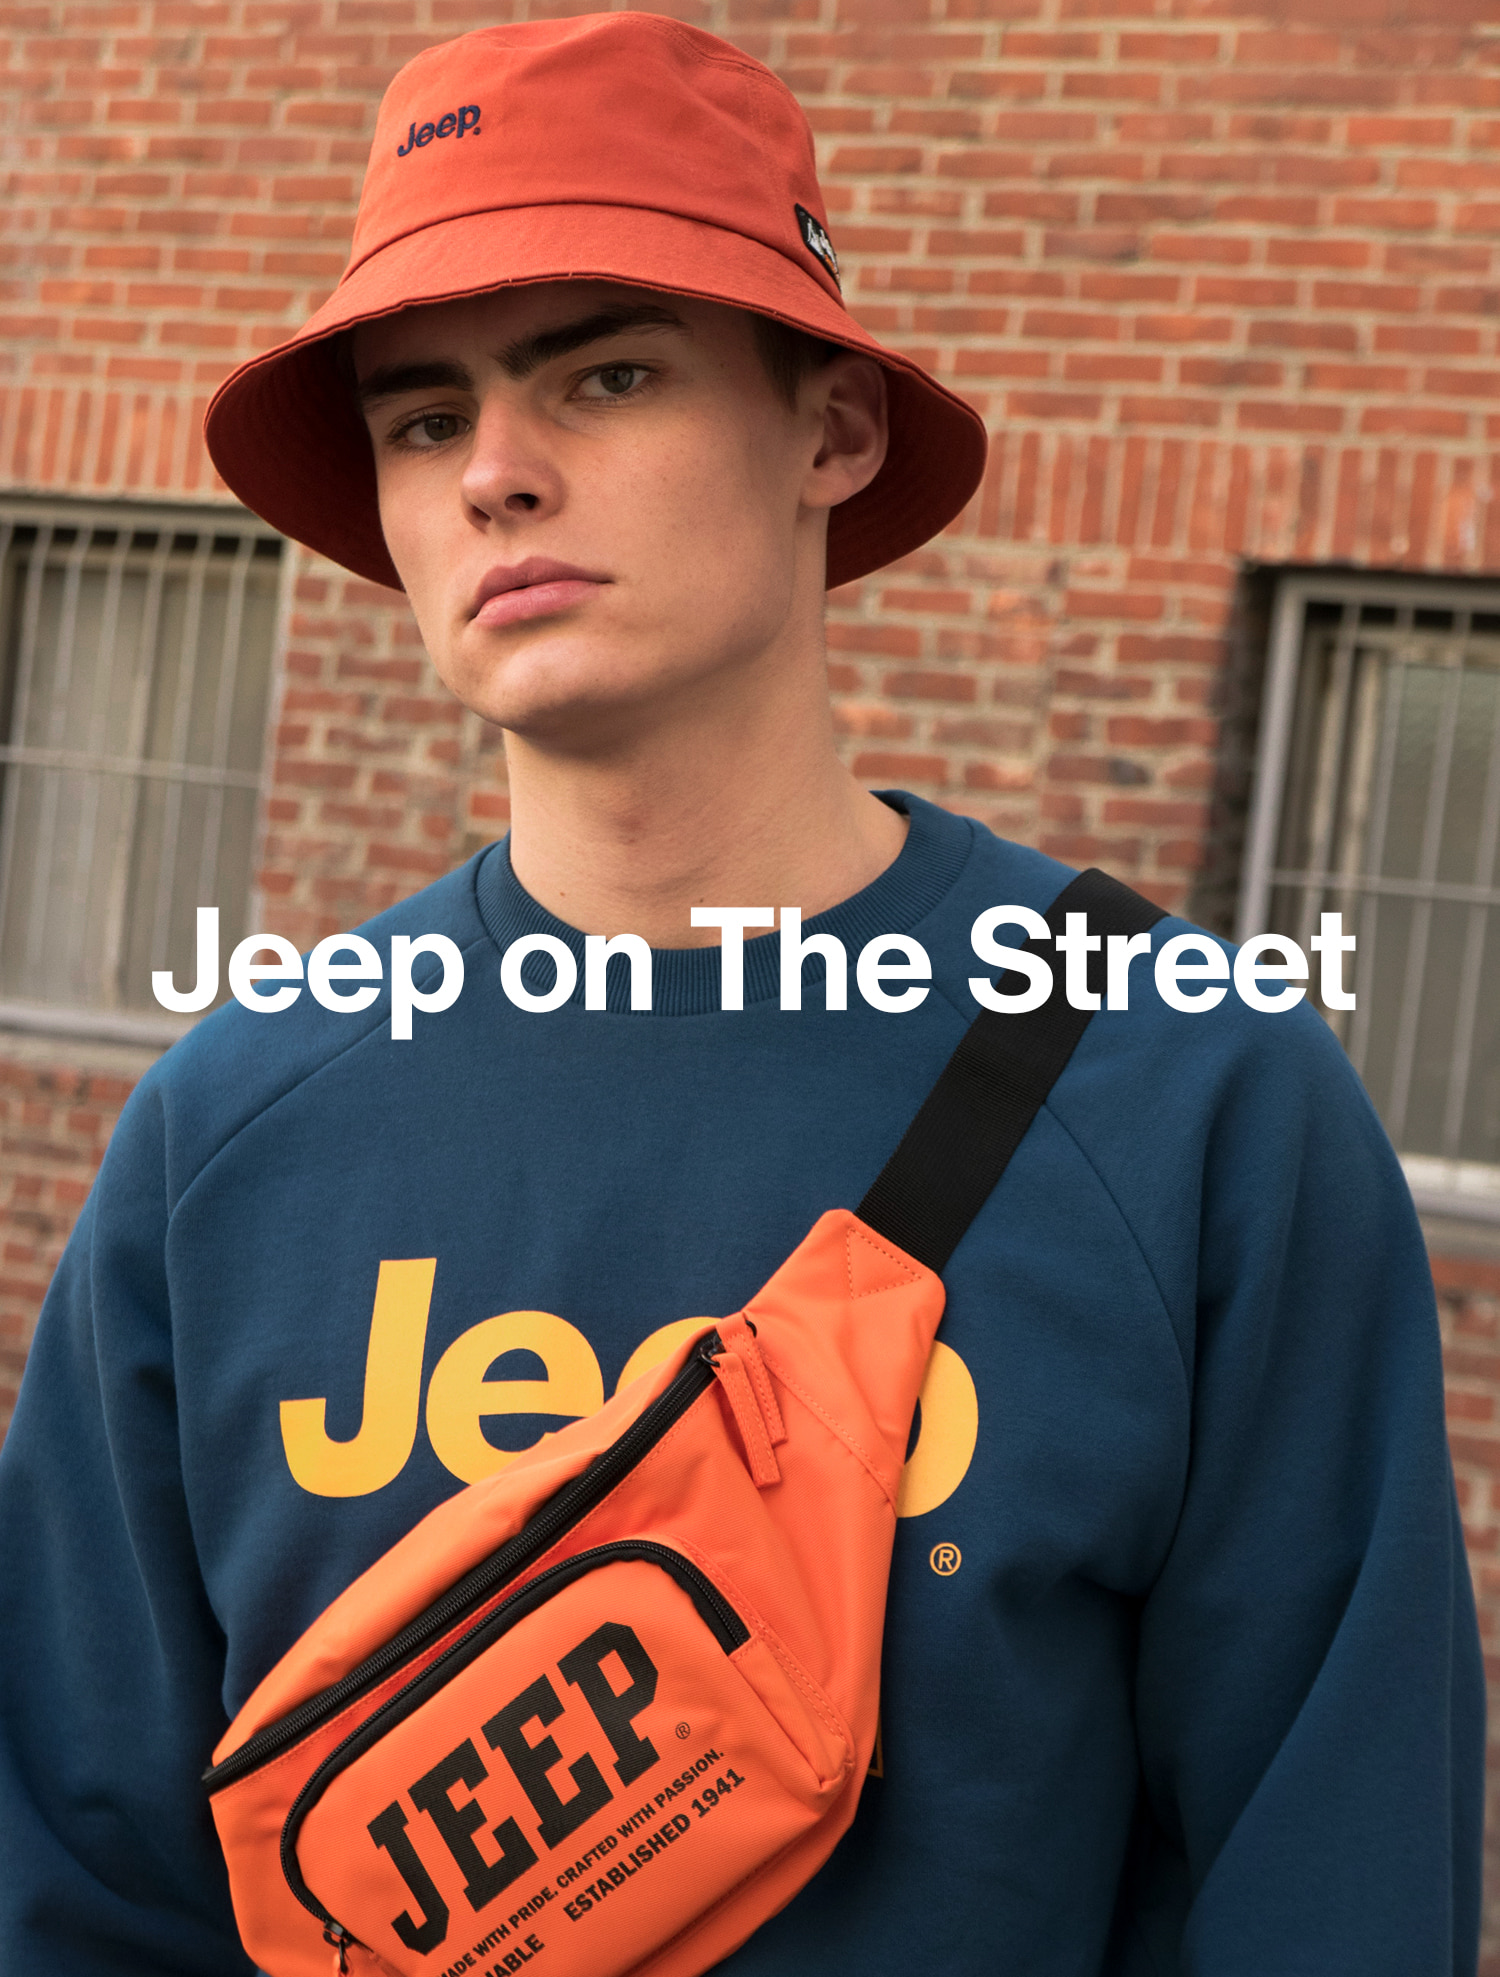 Jeep® on the Street moments